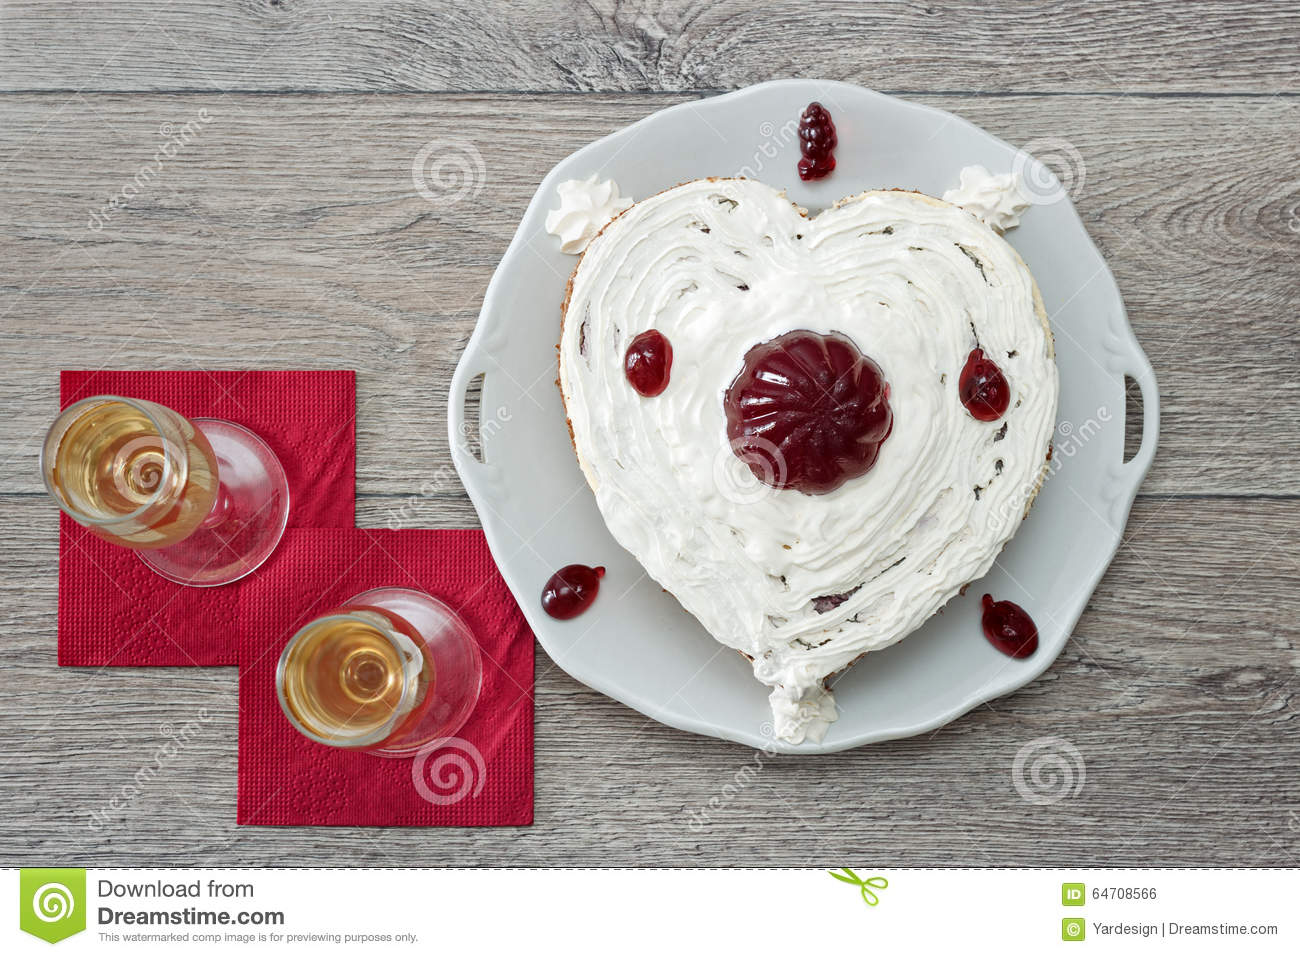 Heart shaped cake with red marmelade and two glasses of champagne served on napkins against wooden background for romantic date